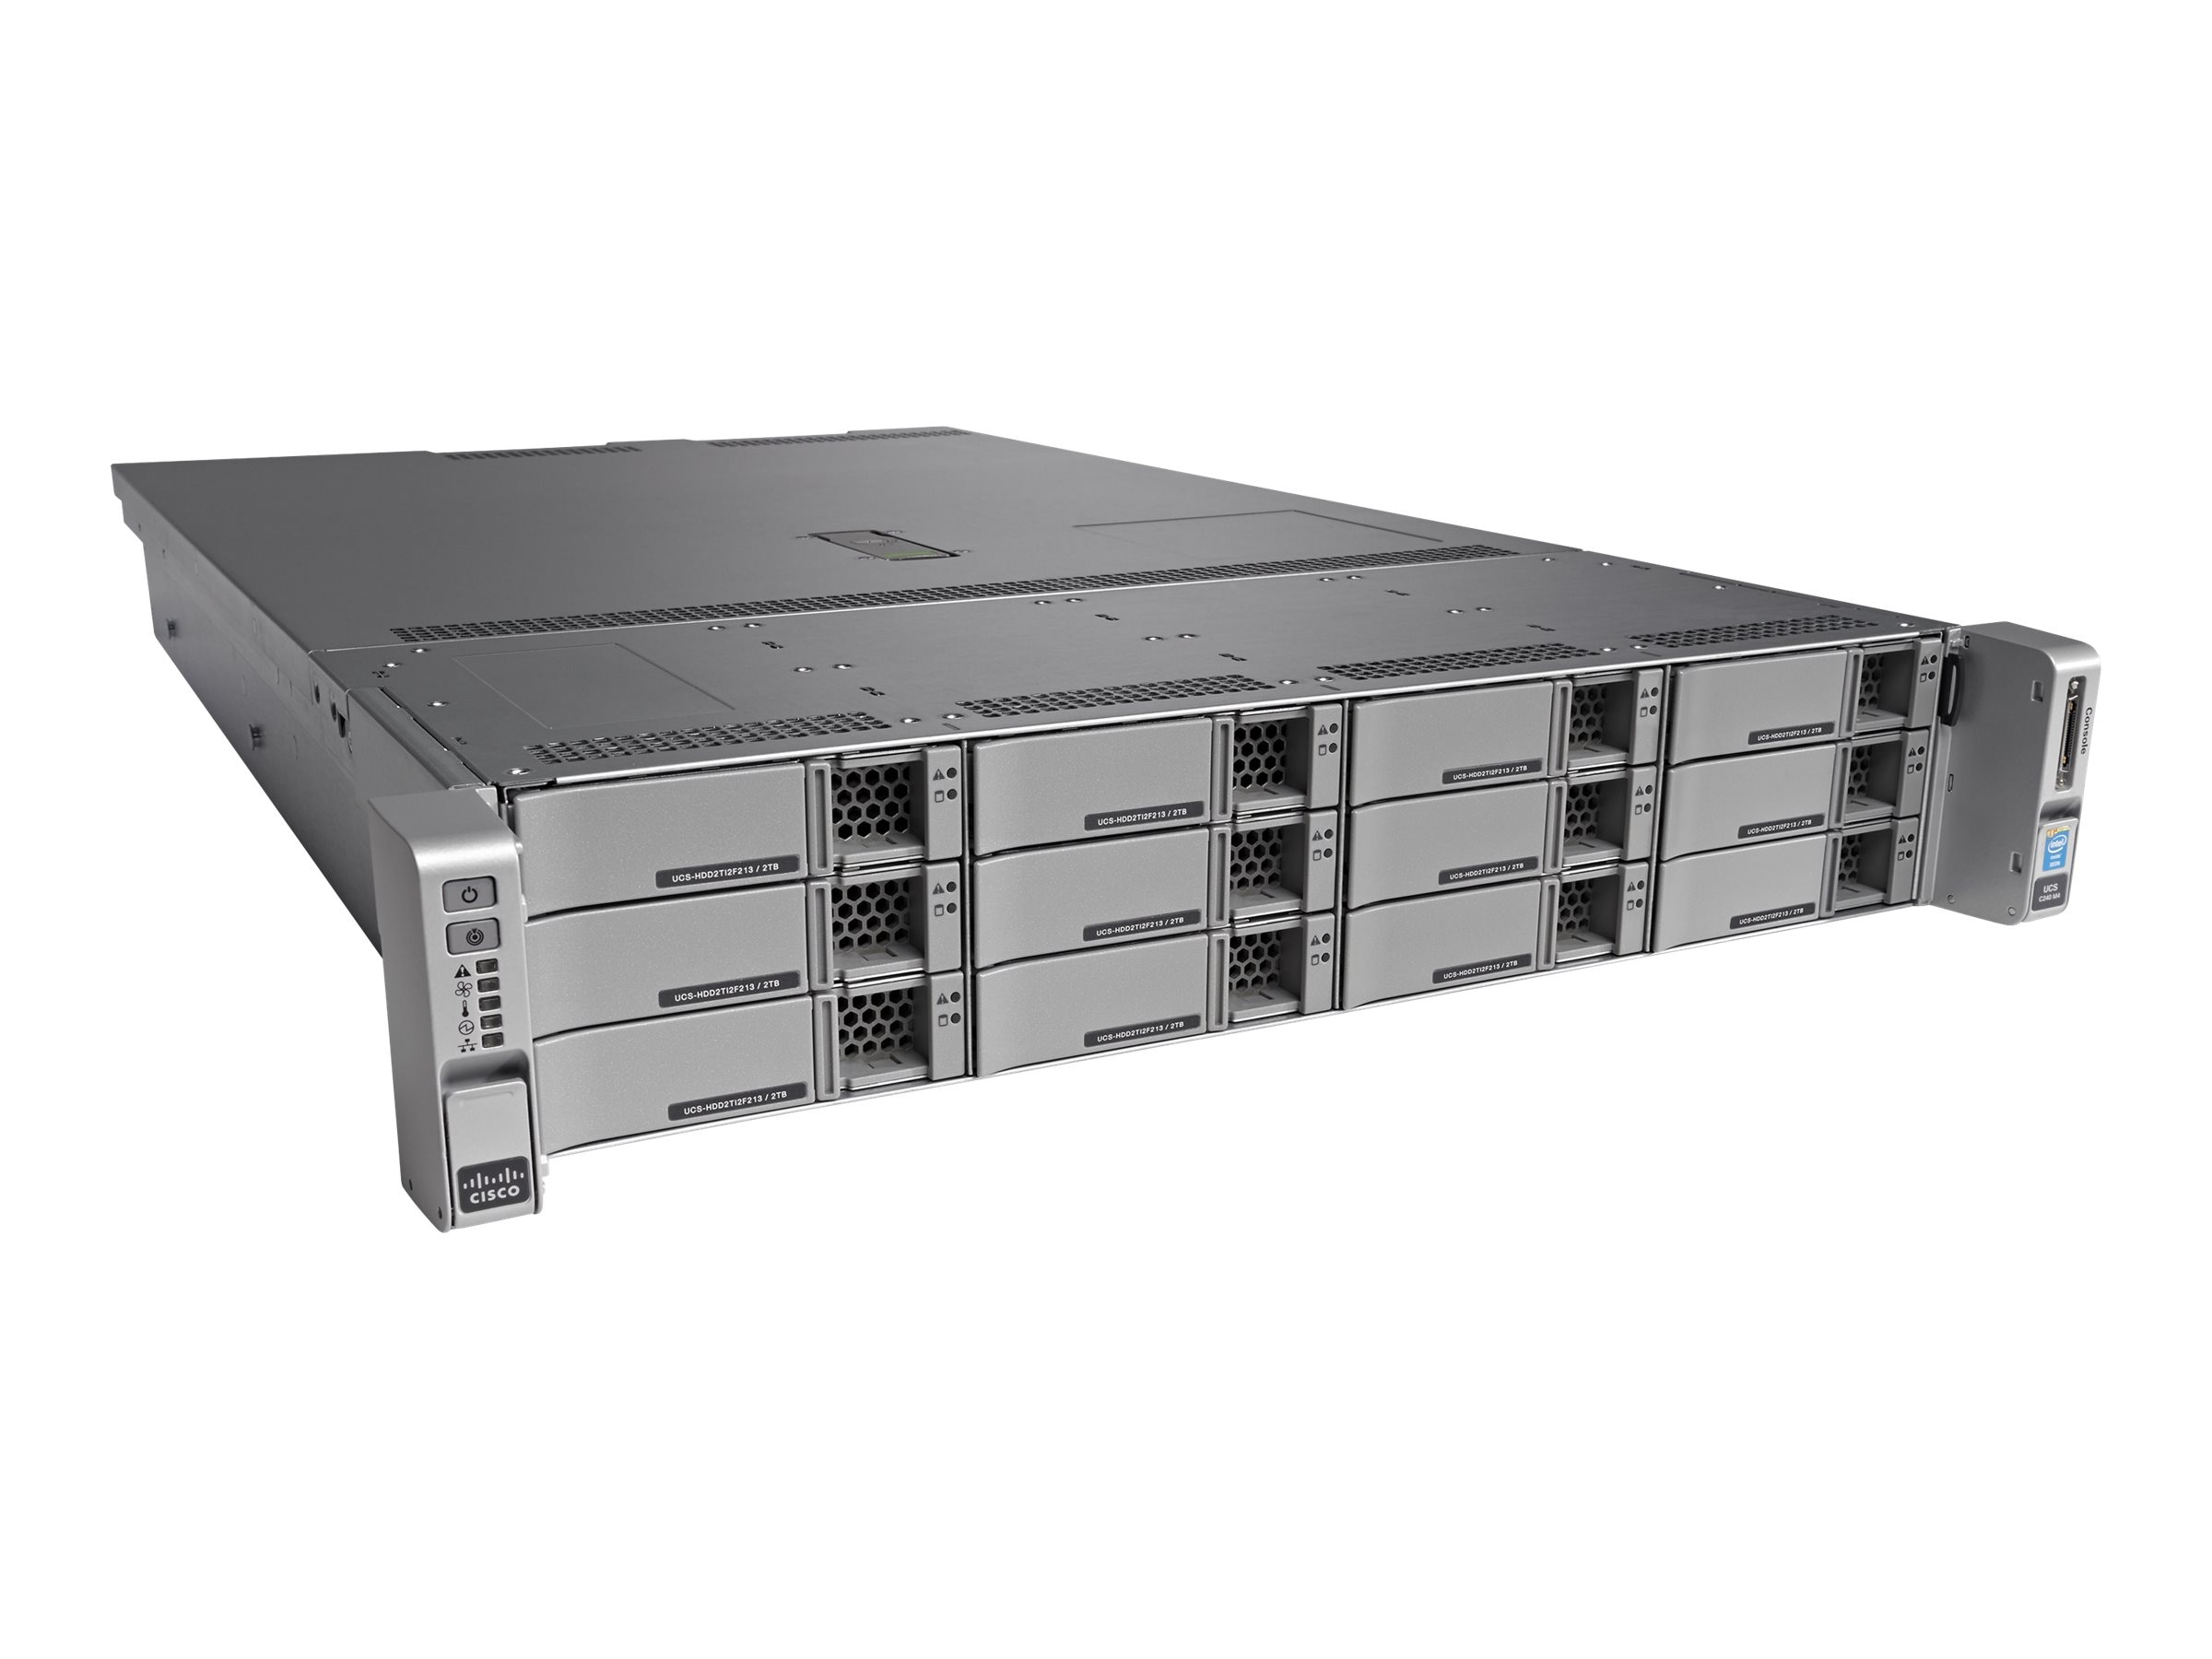 Cisco UCS-SP-C240M4L-S2 Image 5